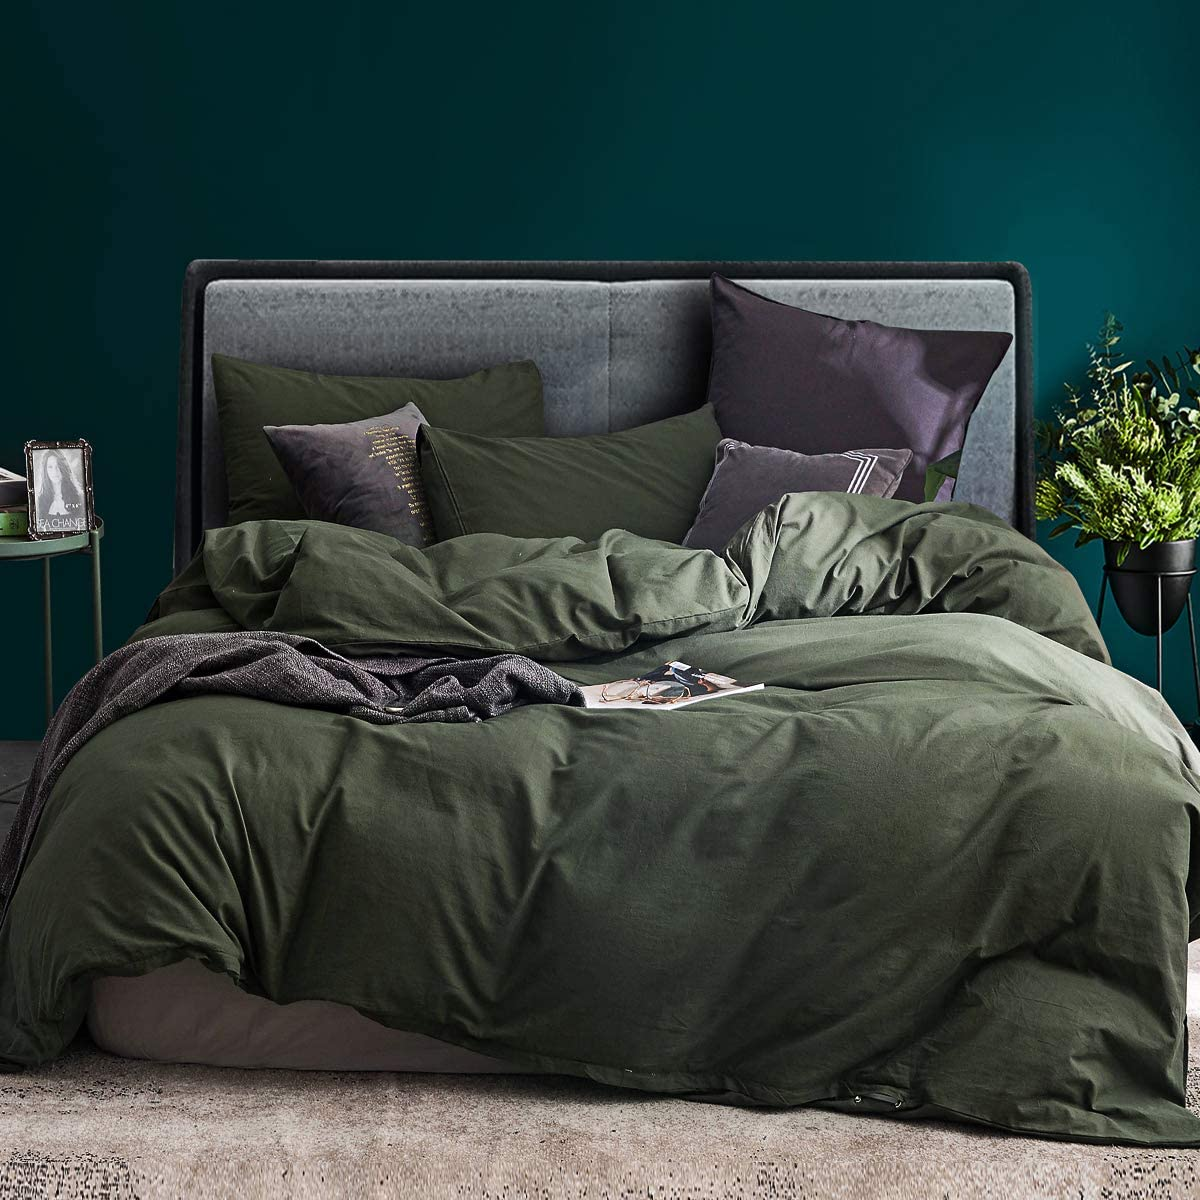 ECOCOTT 3 Pieces Duvet Cover Set King 100% Washed Cotton 1 Duvet Cover with Zipper and 2 Pillowcases, Ultra Soft and Easy Care Breathable Cozy Simple Style Bedding Set (Avocado Green) : Home & Kitchen